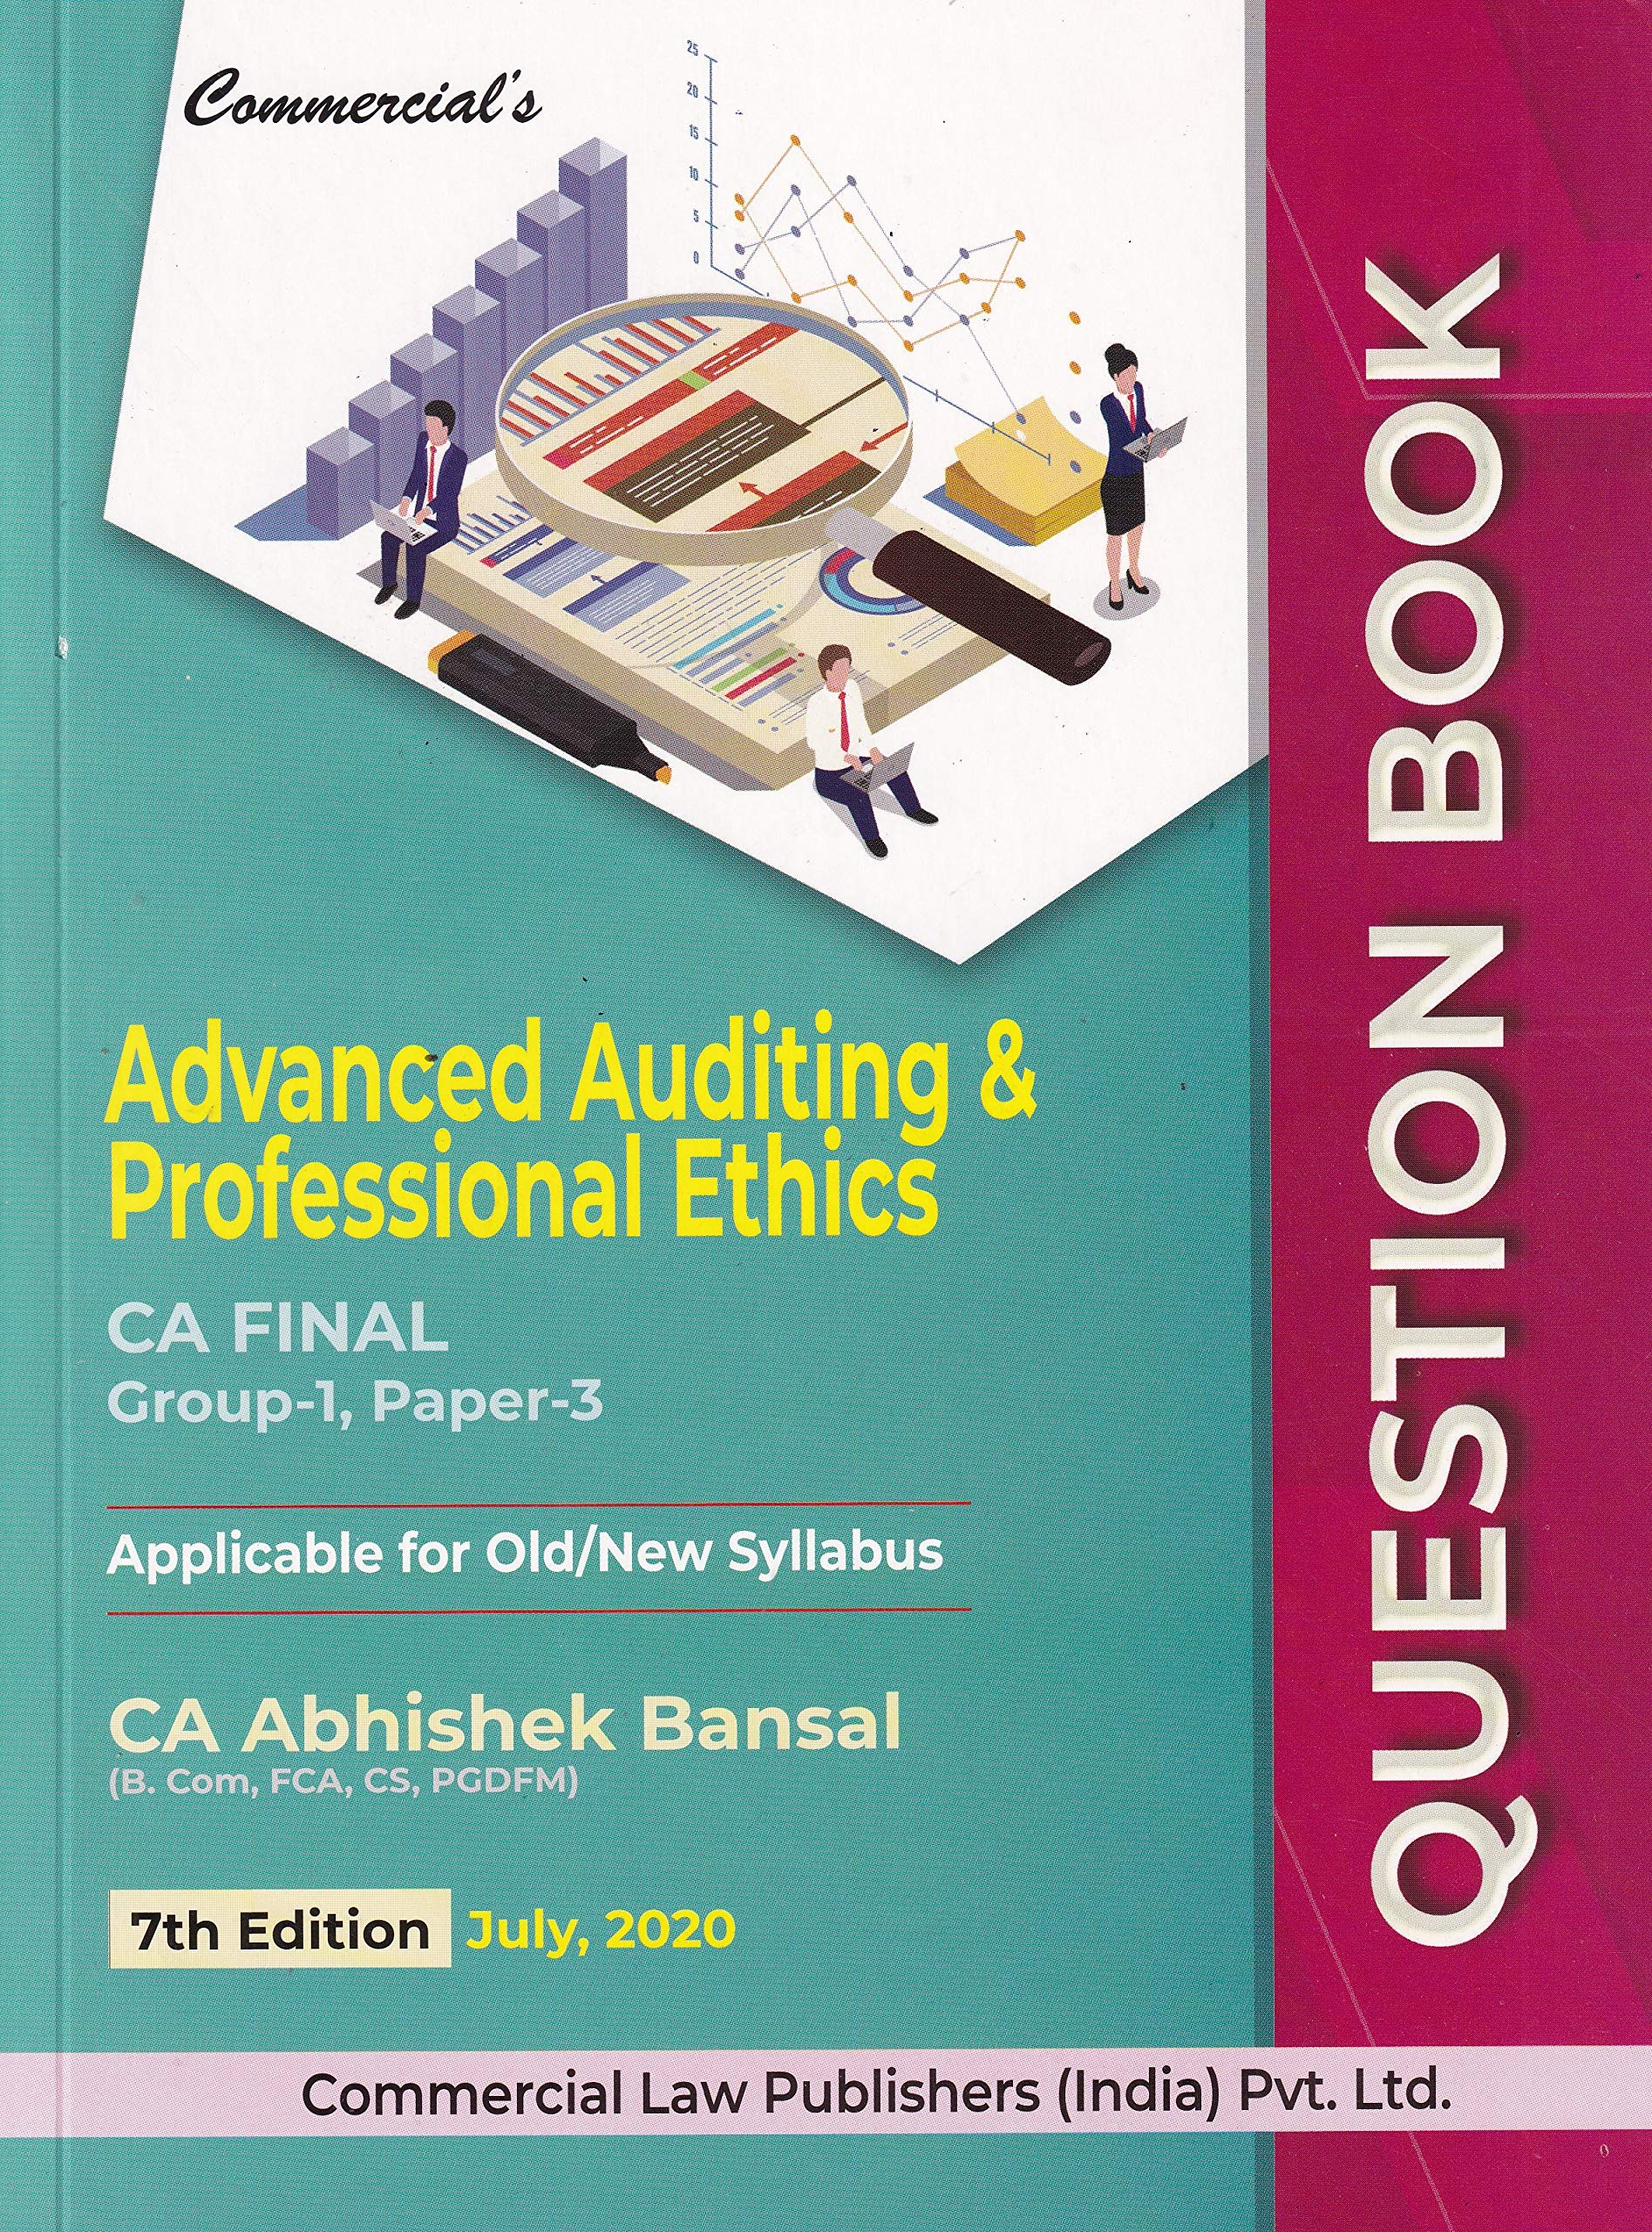 Commercial's Advanced Auditing & Professional Ethics CA Final Group-1, Paper-3 – 7/e, july 2020